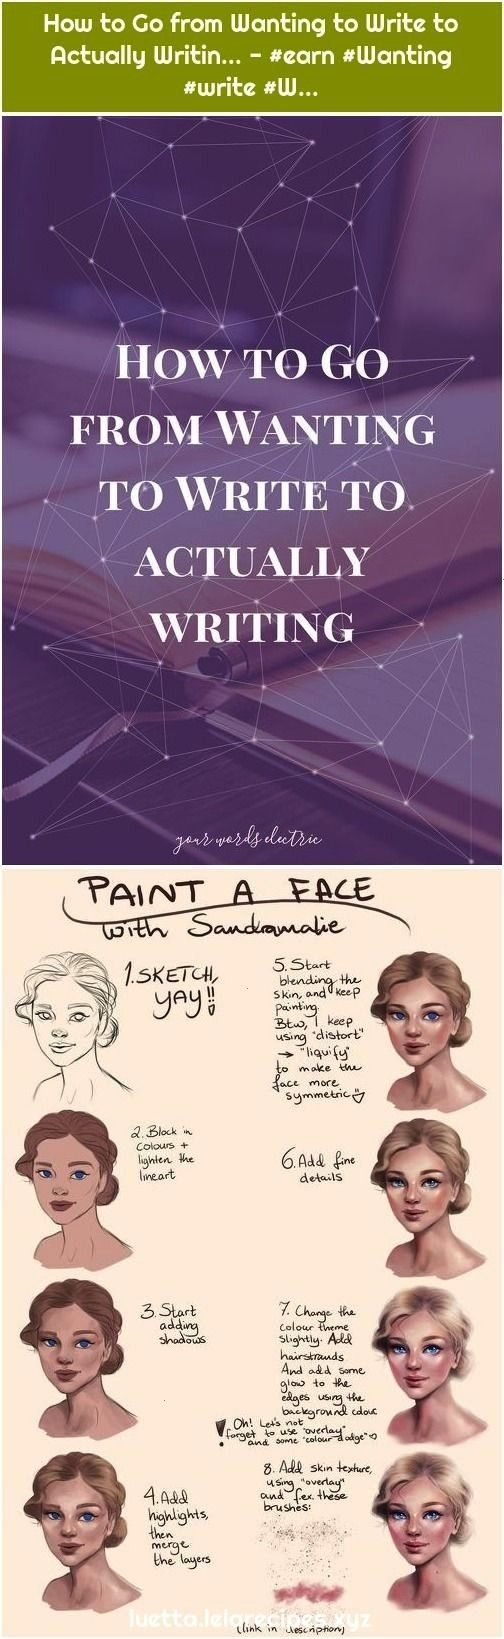 to Go from Wanting to Write to Actually Writin  1 Tutorial Painting a female face of Sandramalie drawing painting  illustration tools to guide How to Go from Wanting to W...